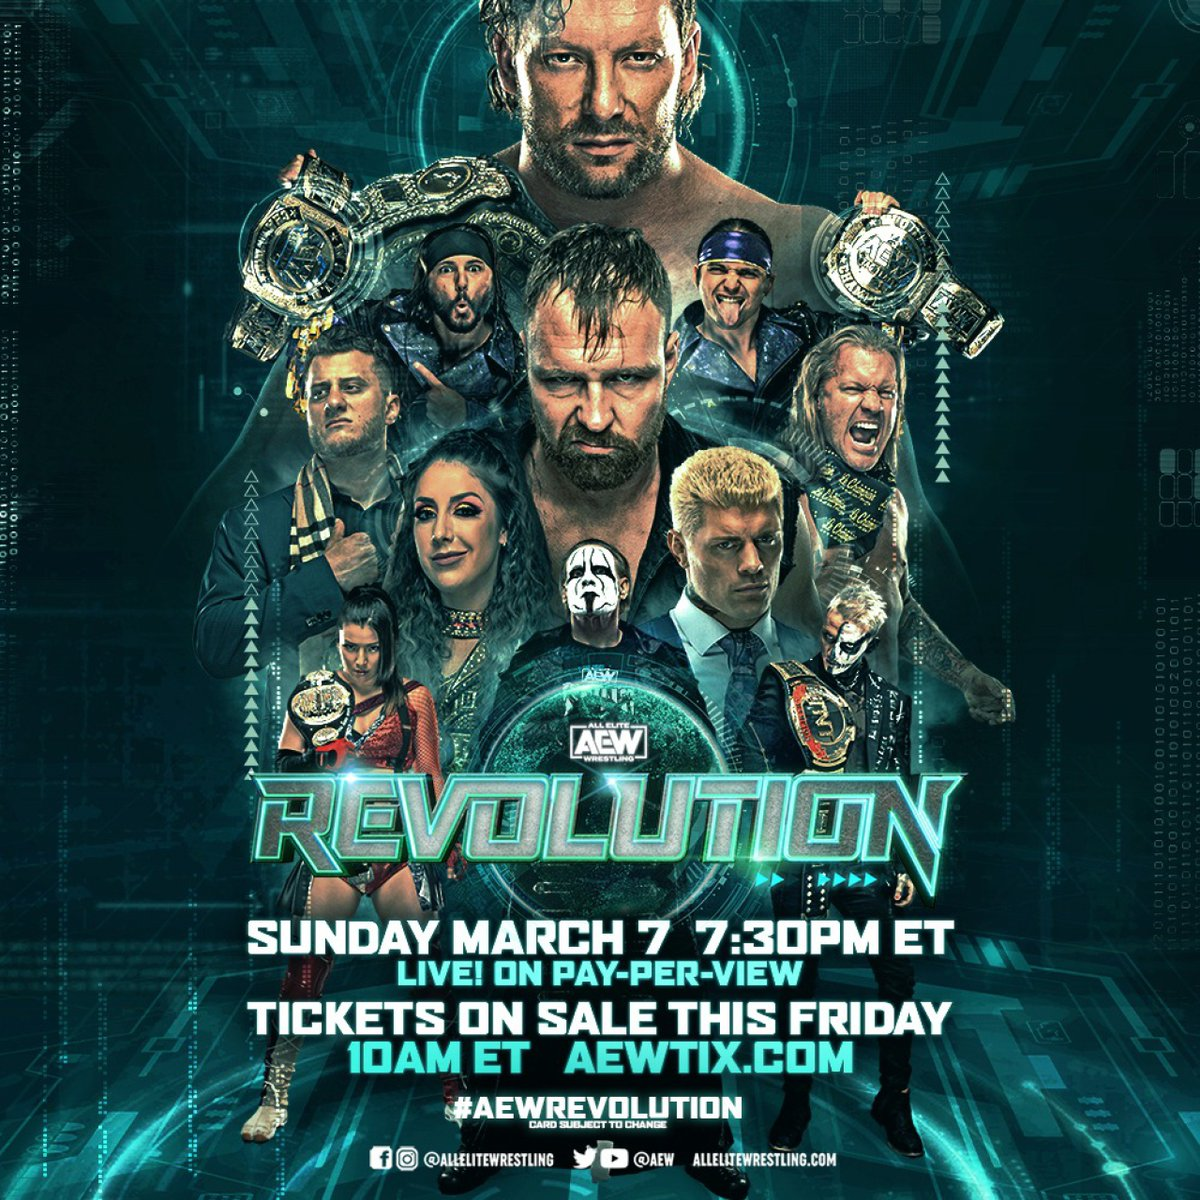 Tickets for AEWs return to PPV#AEWRevolution Sunday, March 7 live from #dailysplace headlined by the Exploding Barbed Wire Death Match for the AEW World Title w/ Kenny Omega facing Jon Moxley, go on-sale THIS FRIDAY at 10am EST starting at $40! Get tix at AEWTIX.com